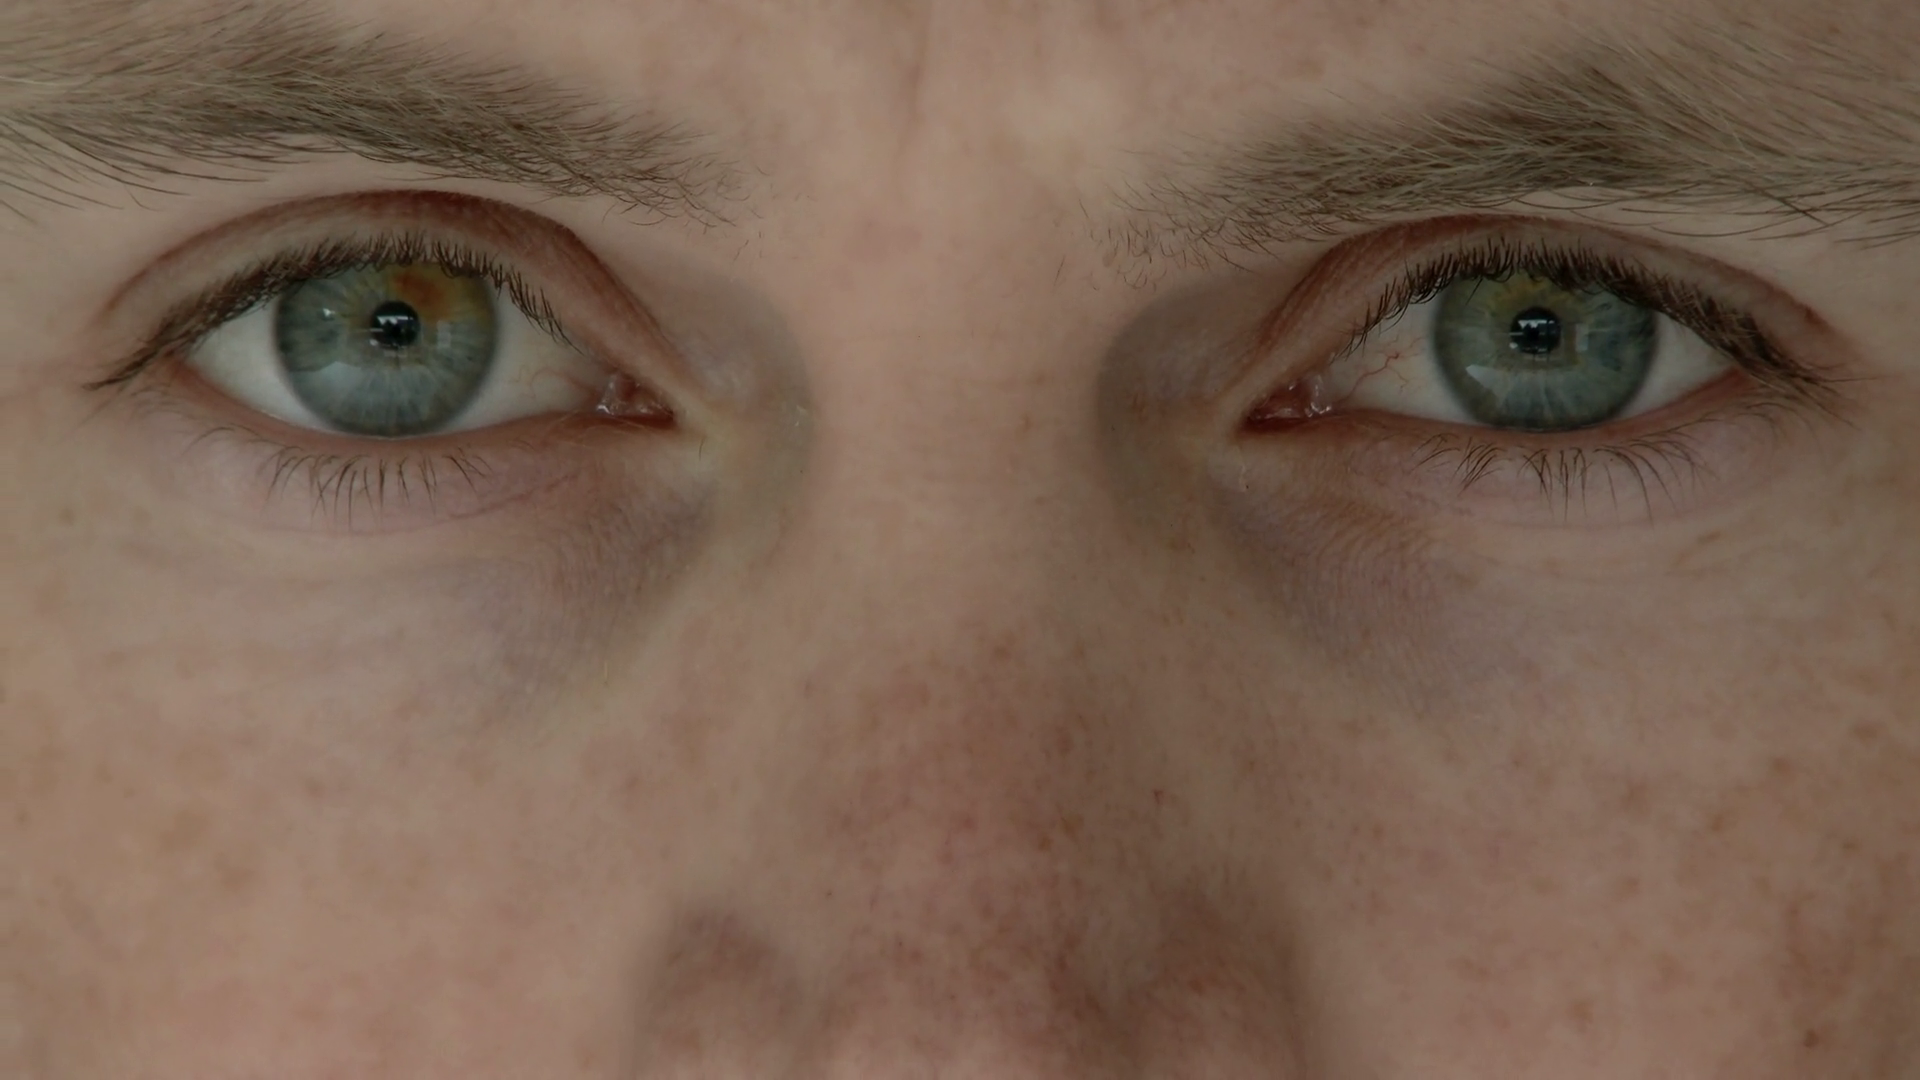 Close up of mans eyes looking up and into camera lens